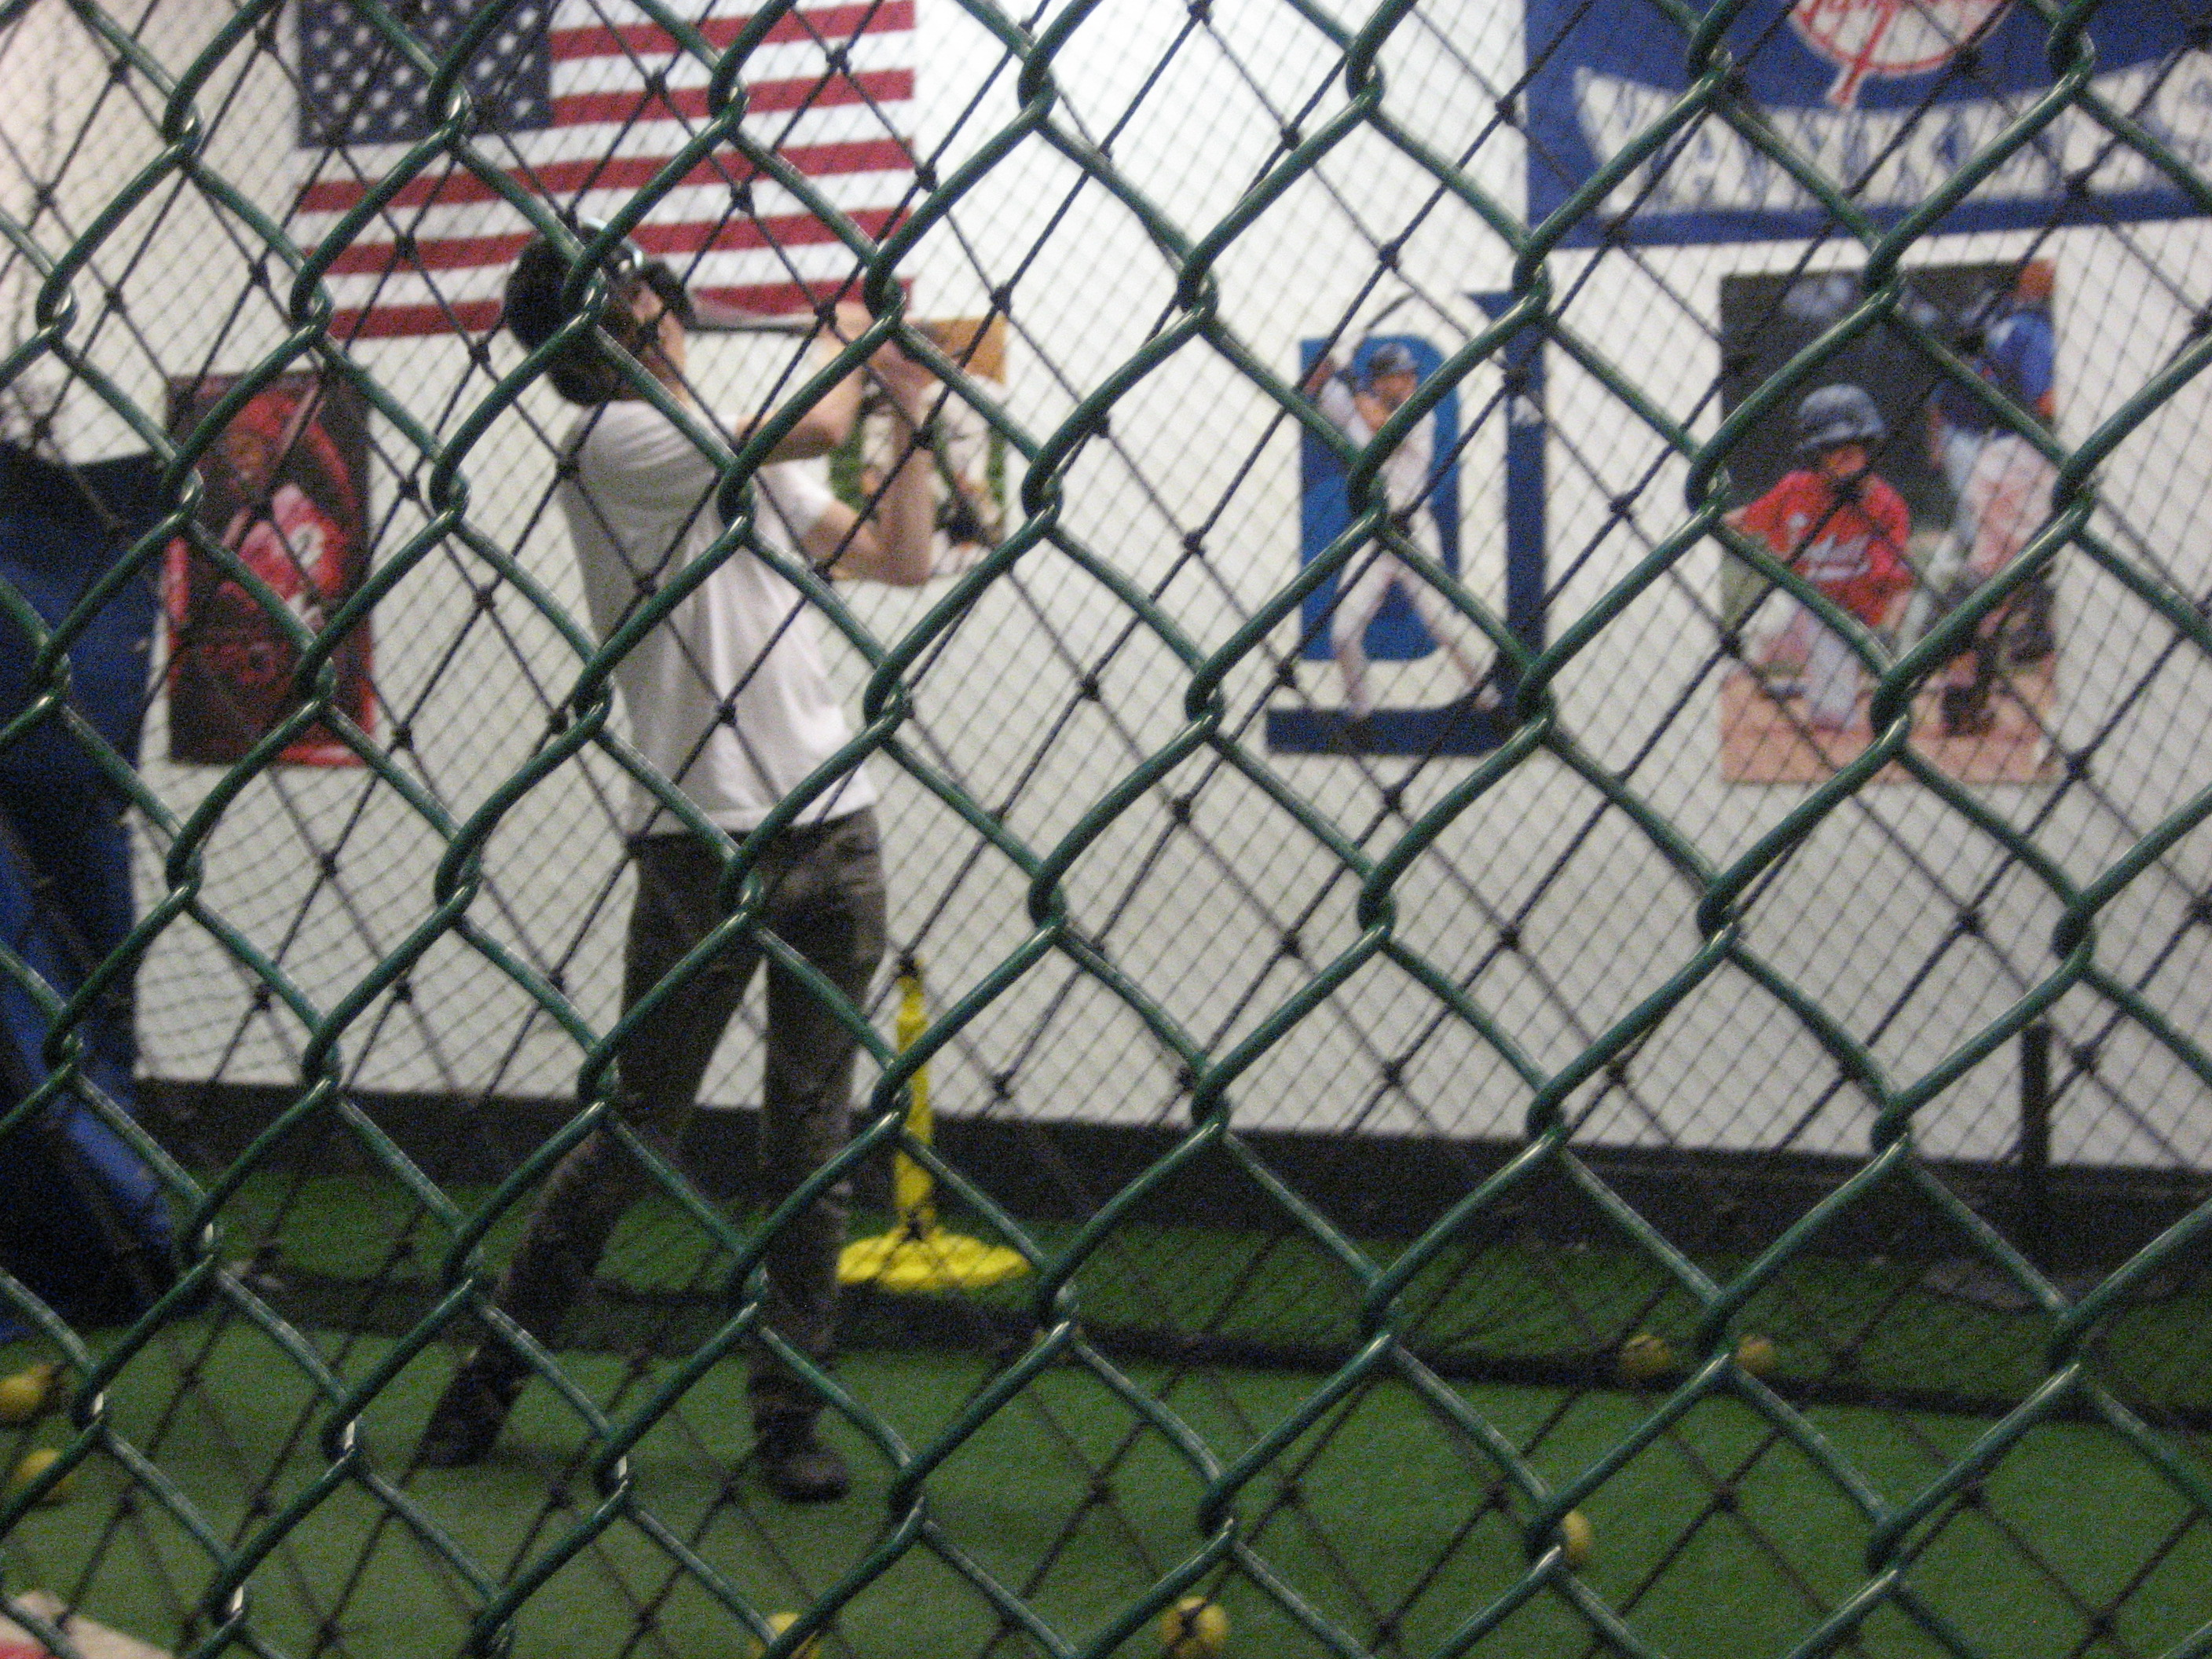 Kenneth taking a swing at The Baseball Center NYC